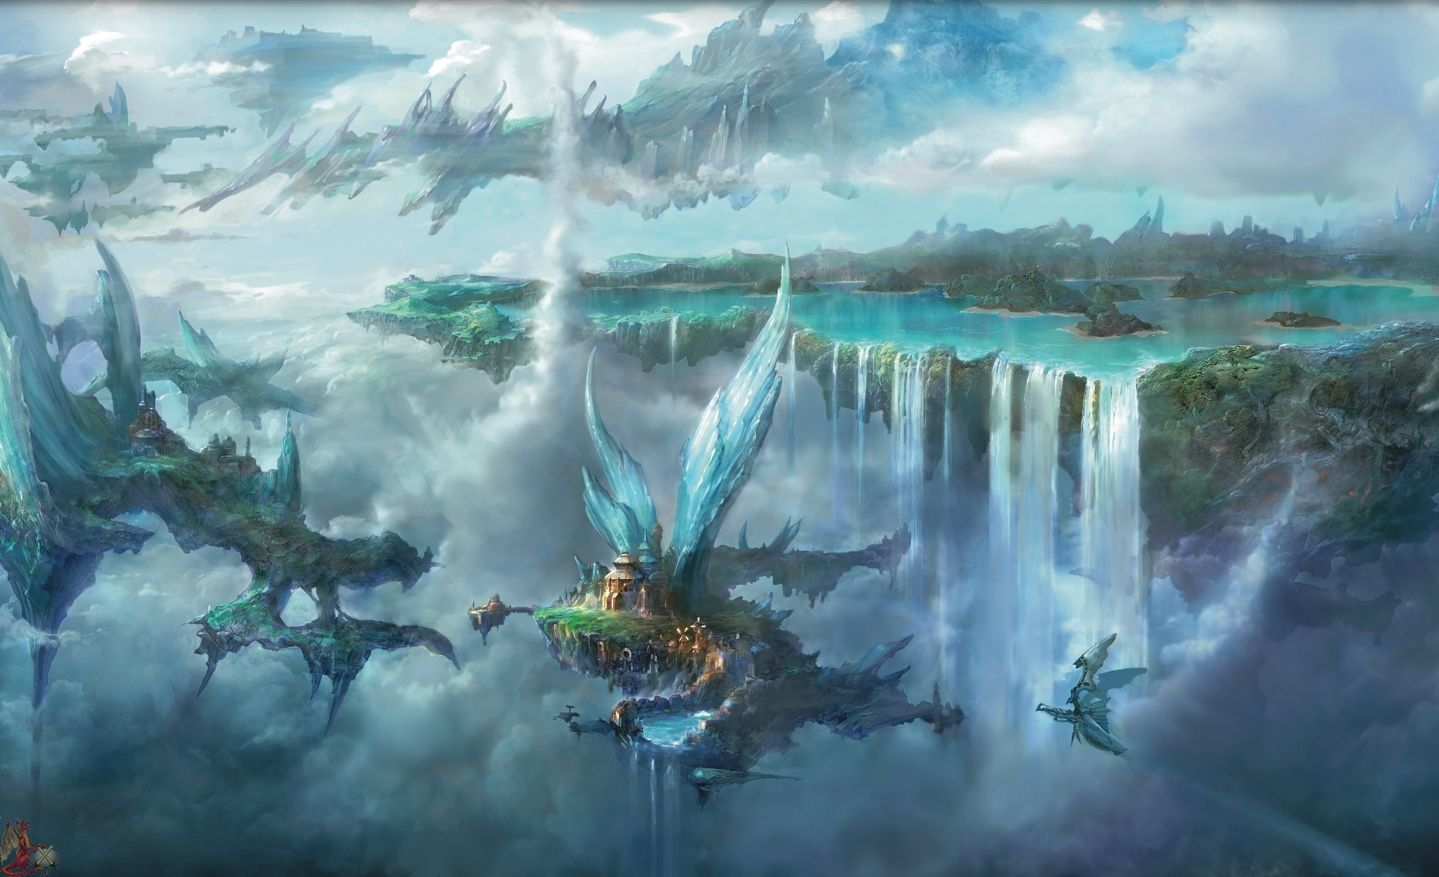 Wallpapers For Final Fantasy Landscape Wallpaper Hd 1439x877